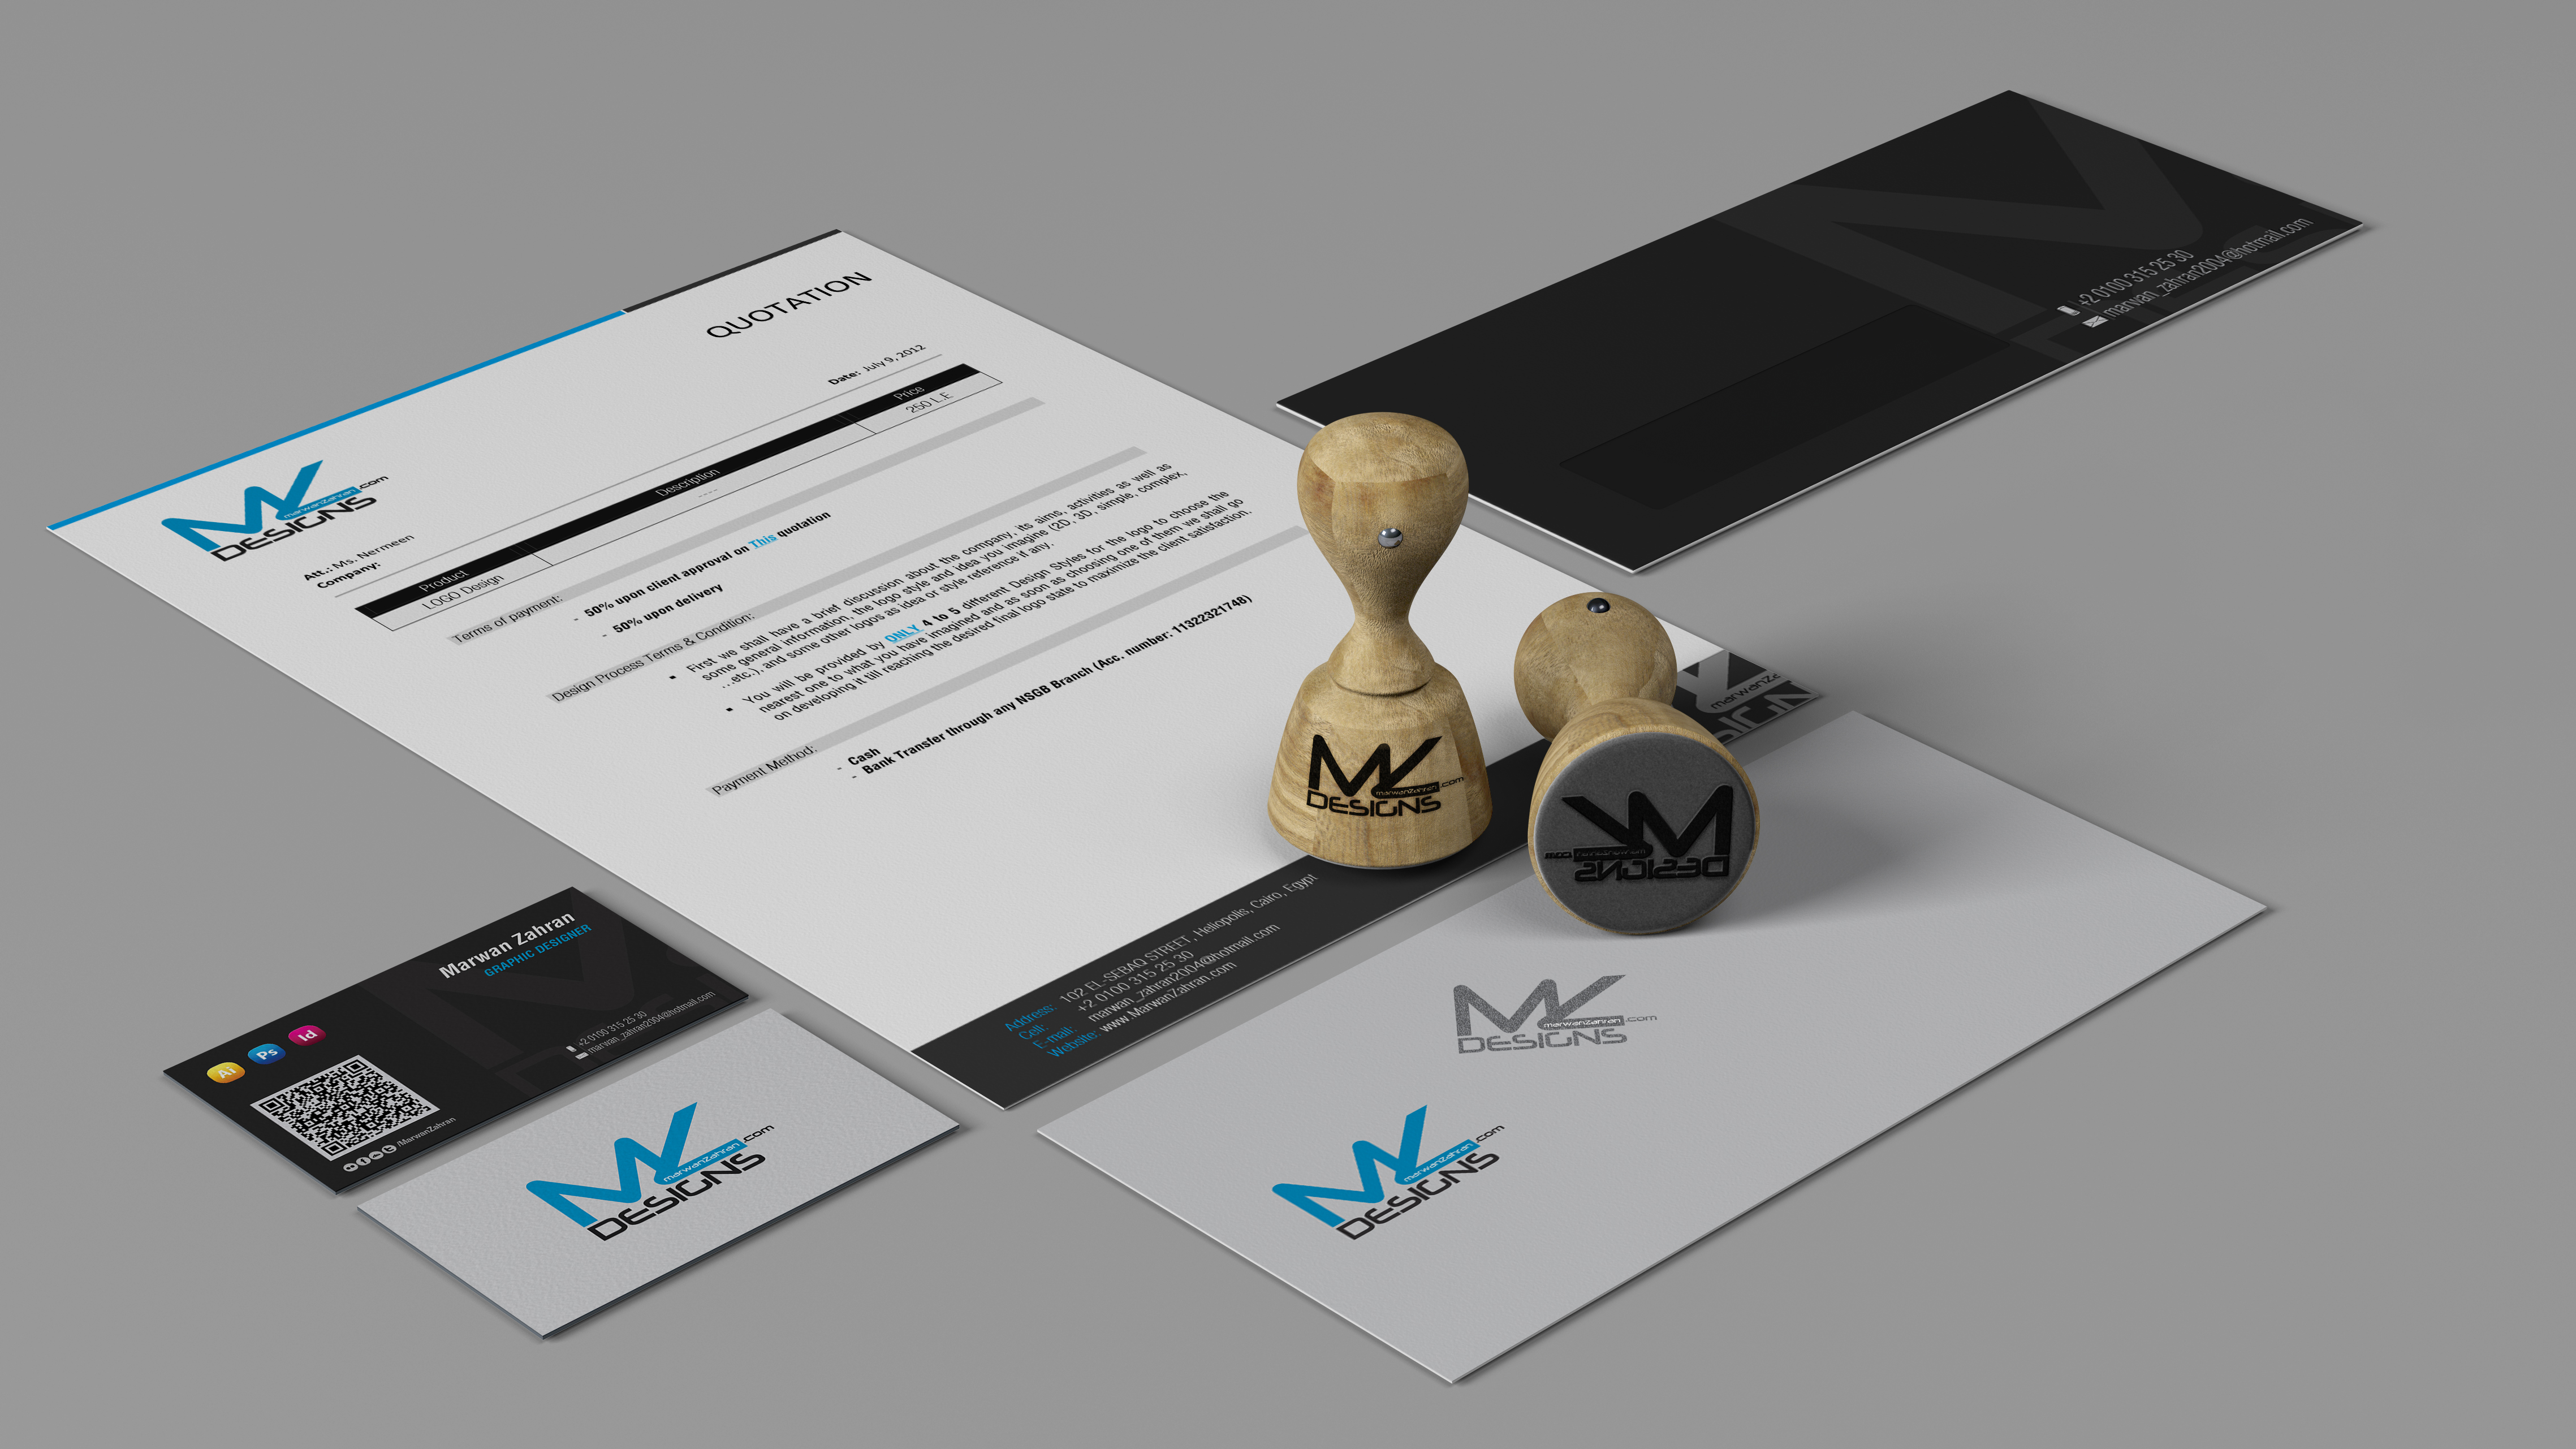 stationary_and_logo_design_corporate_identity_by_marwanzahran-d5bl8pn